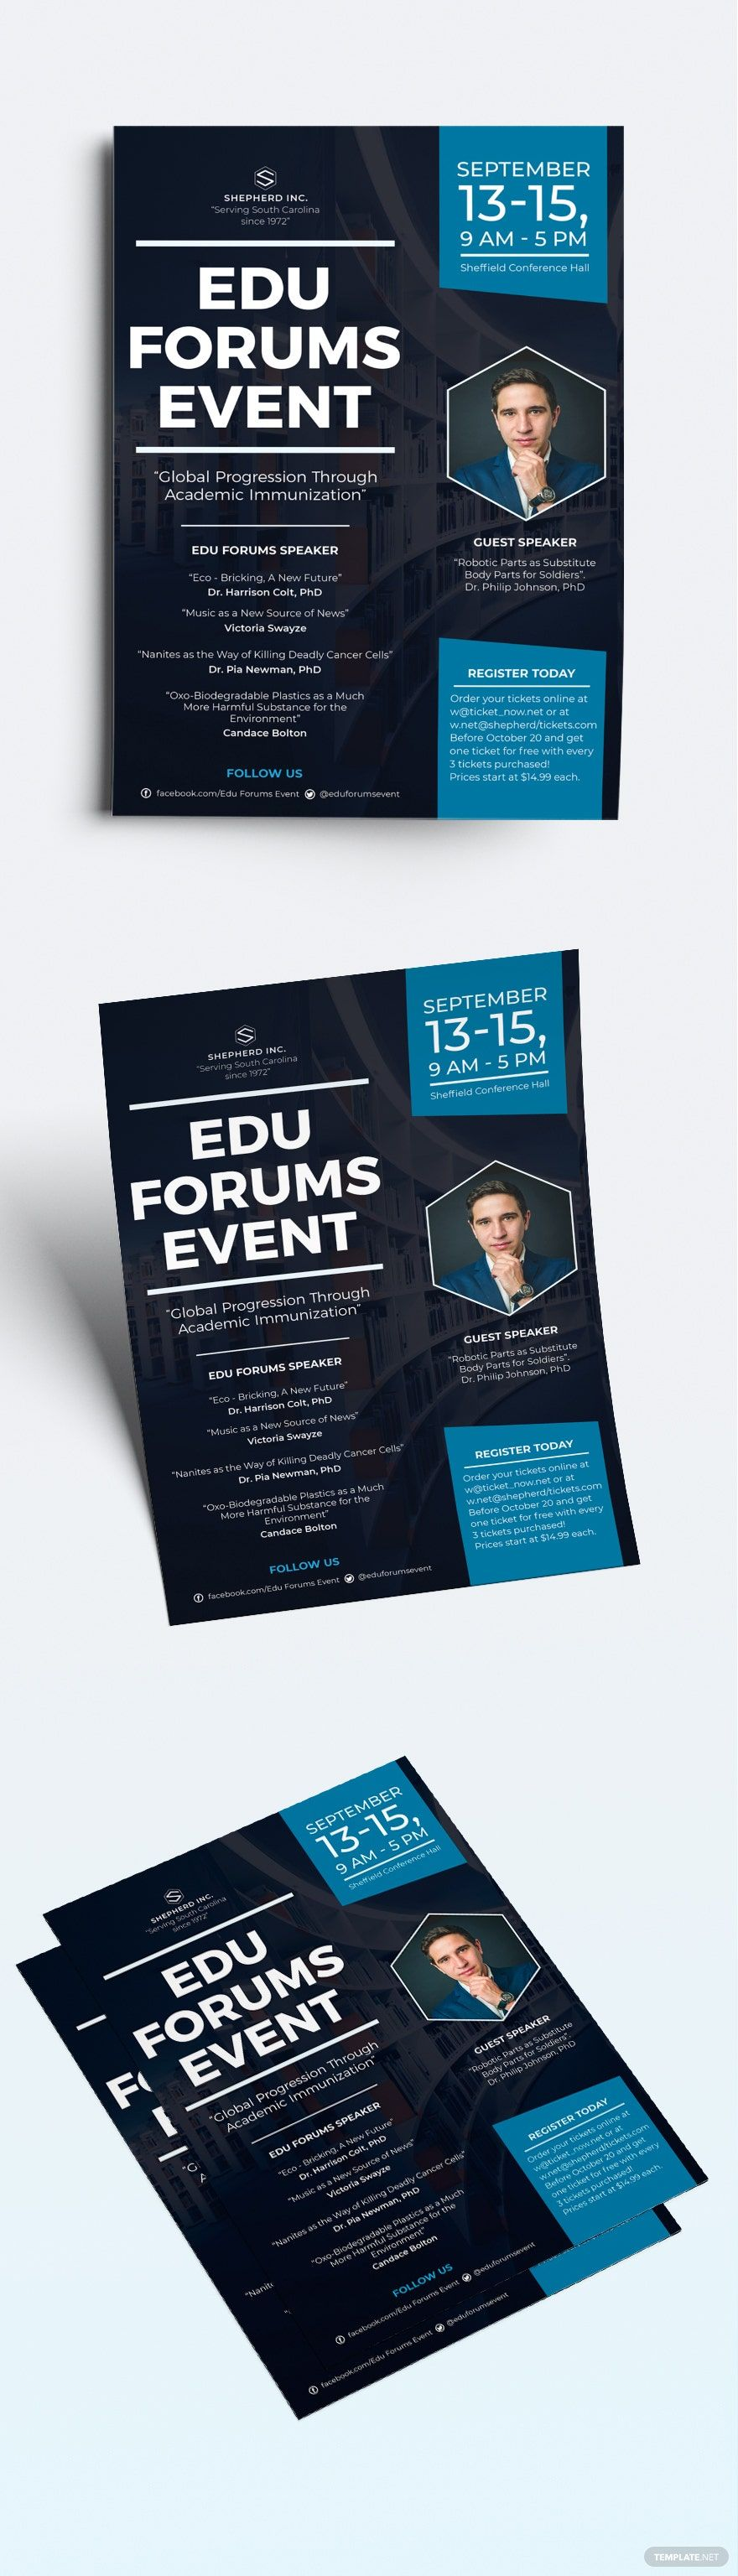 Event Advertising Flyer Template Free Jpg Google Docs Illustrator Indesign Word Apple Pages Psd Publisher Template Net Event Advertising Advertising Flyers Flyer Template Microsoft publisher template free download